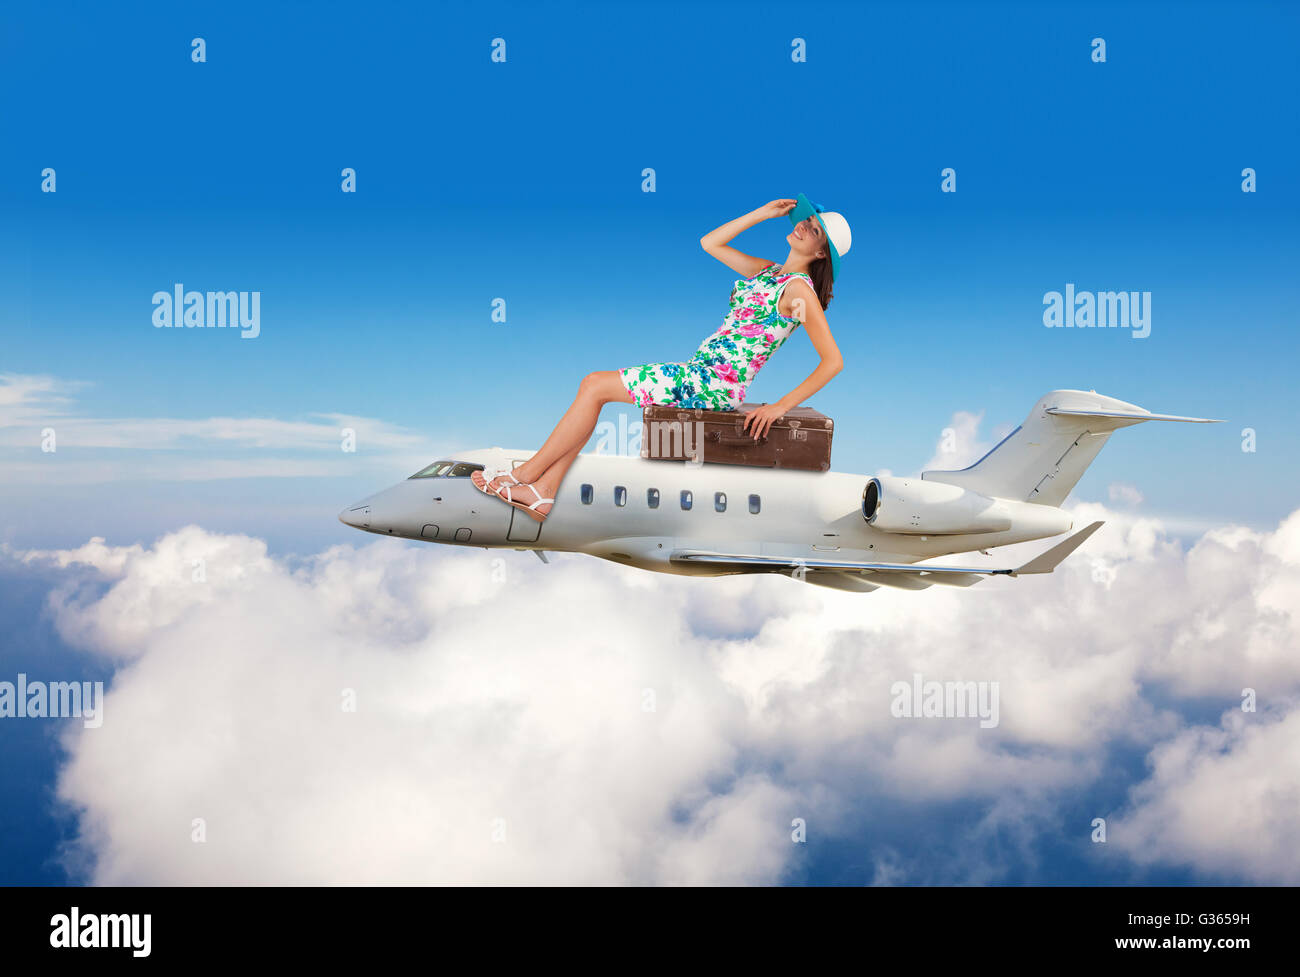 Young woman sitting on airplane, flying above clouds. Concept of traveling and summer vacation - Stock Image